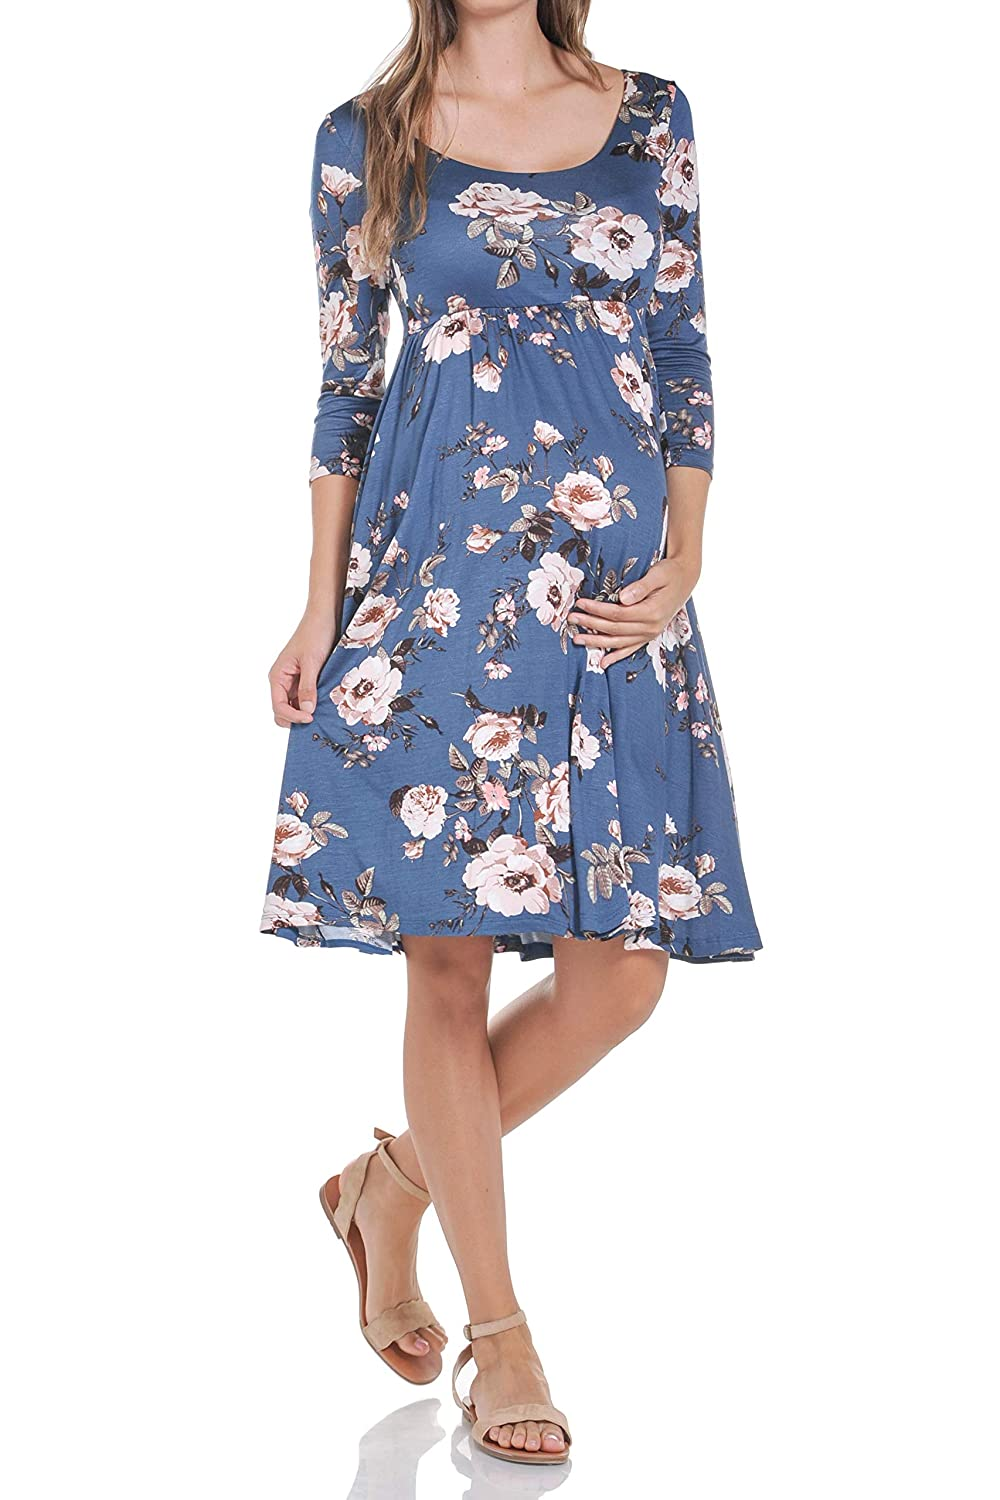 Beachcoco DRESS レディース B07GFR21G9 X-Large|Multi 05 Dutch Blue Flower Multi 05 Dutch Blue Flower X-Large